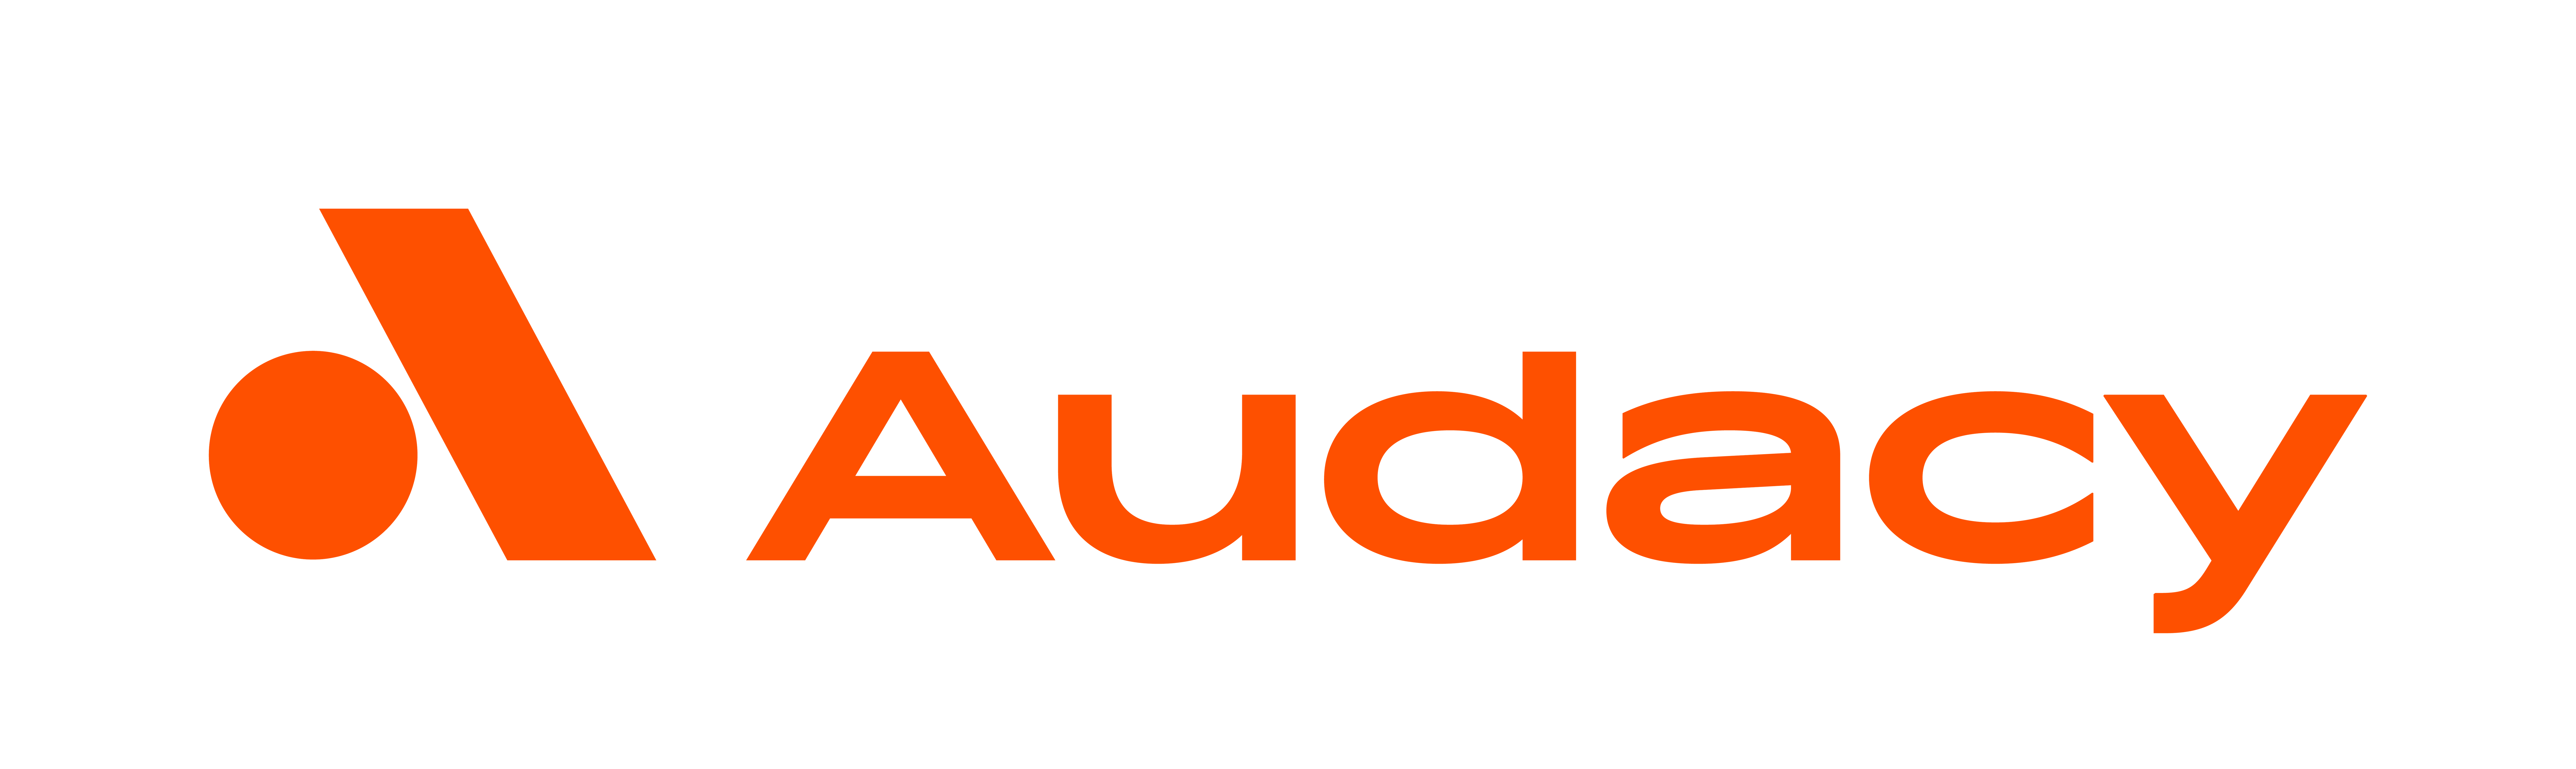 Audacy Support Help Center home page